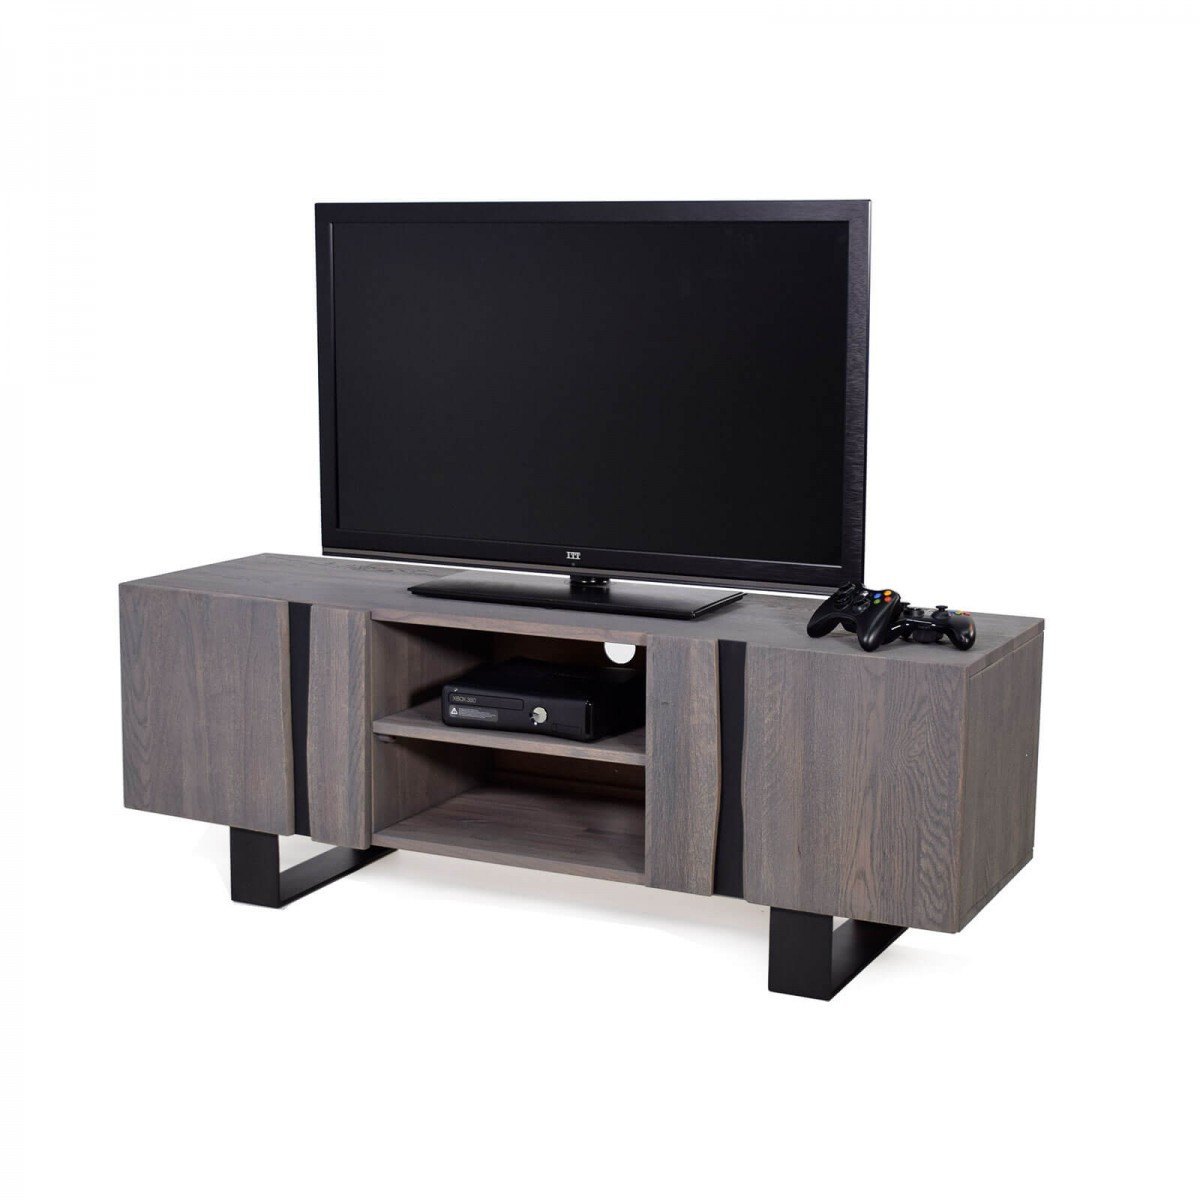 tv schrank wildeiche massiv grau ge lt metall 150 edge. Black Bedroom Furniture Sets. Home Design Ideas